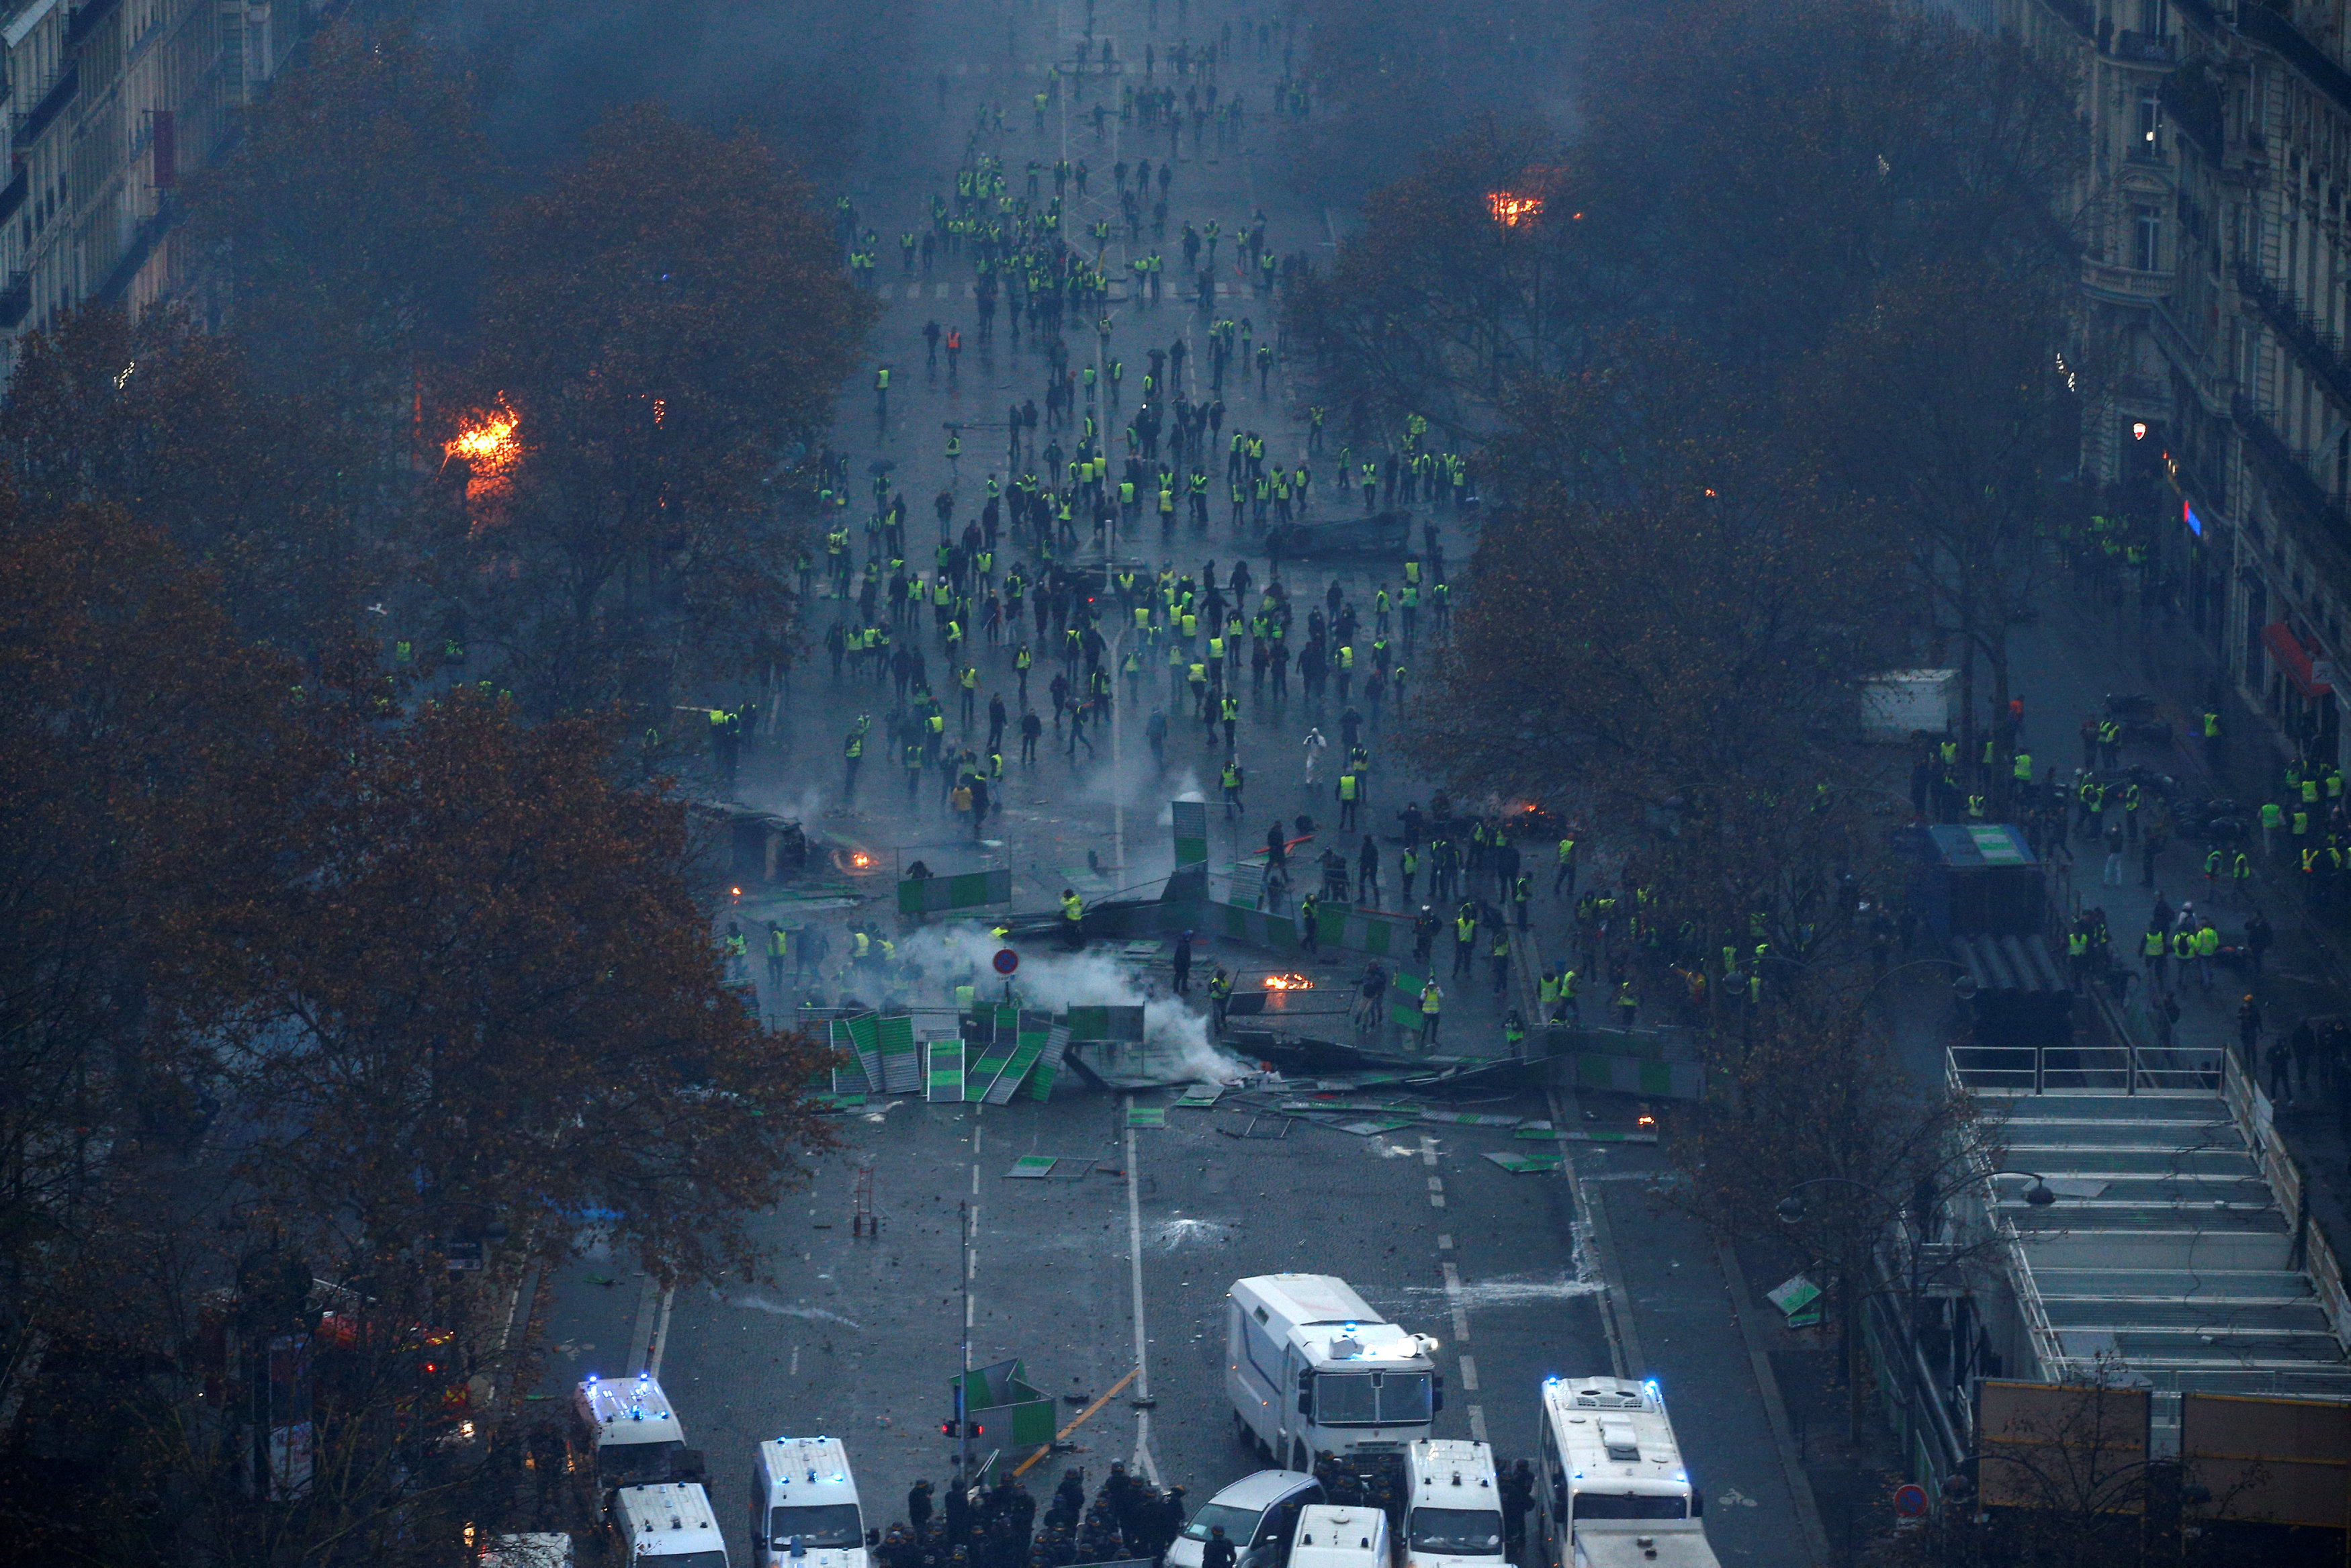 2018-12-01T161219Z_415777677_RC14B99FAE60_RTRMADP_3_FRANCE-PROTESTS